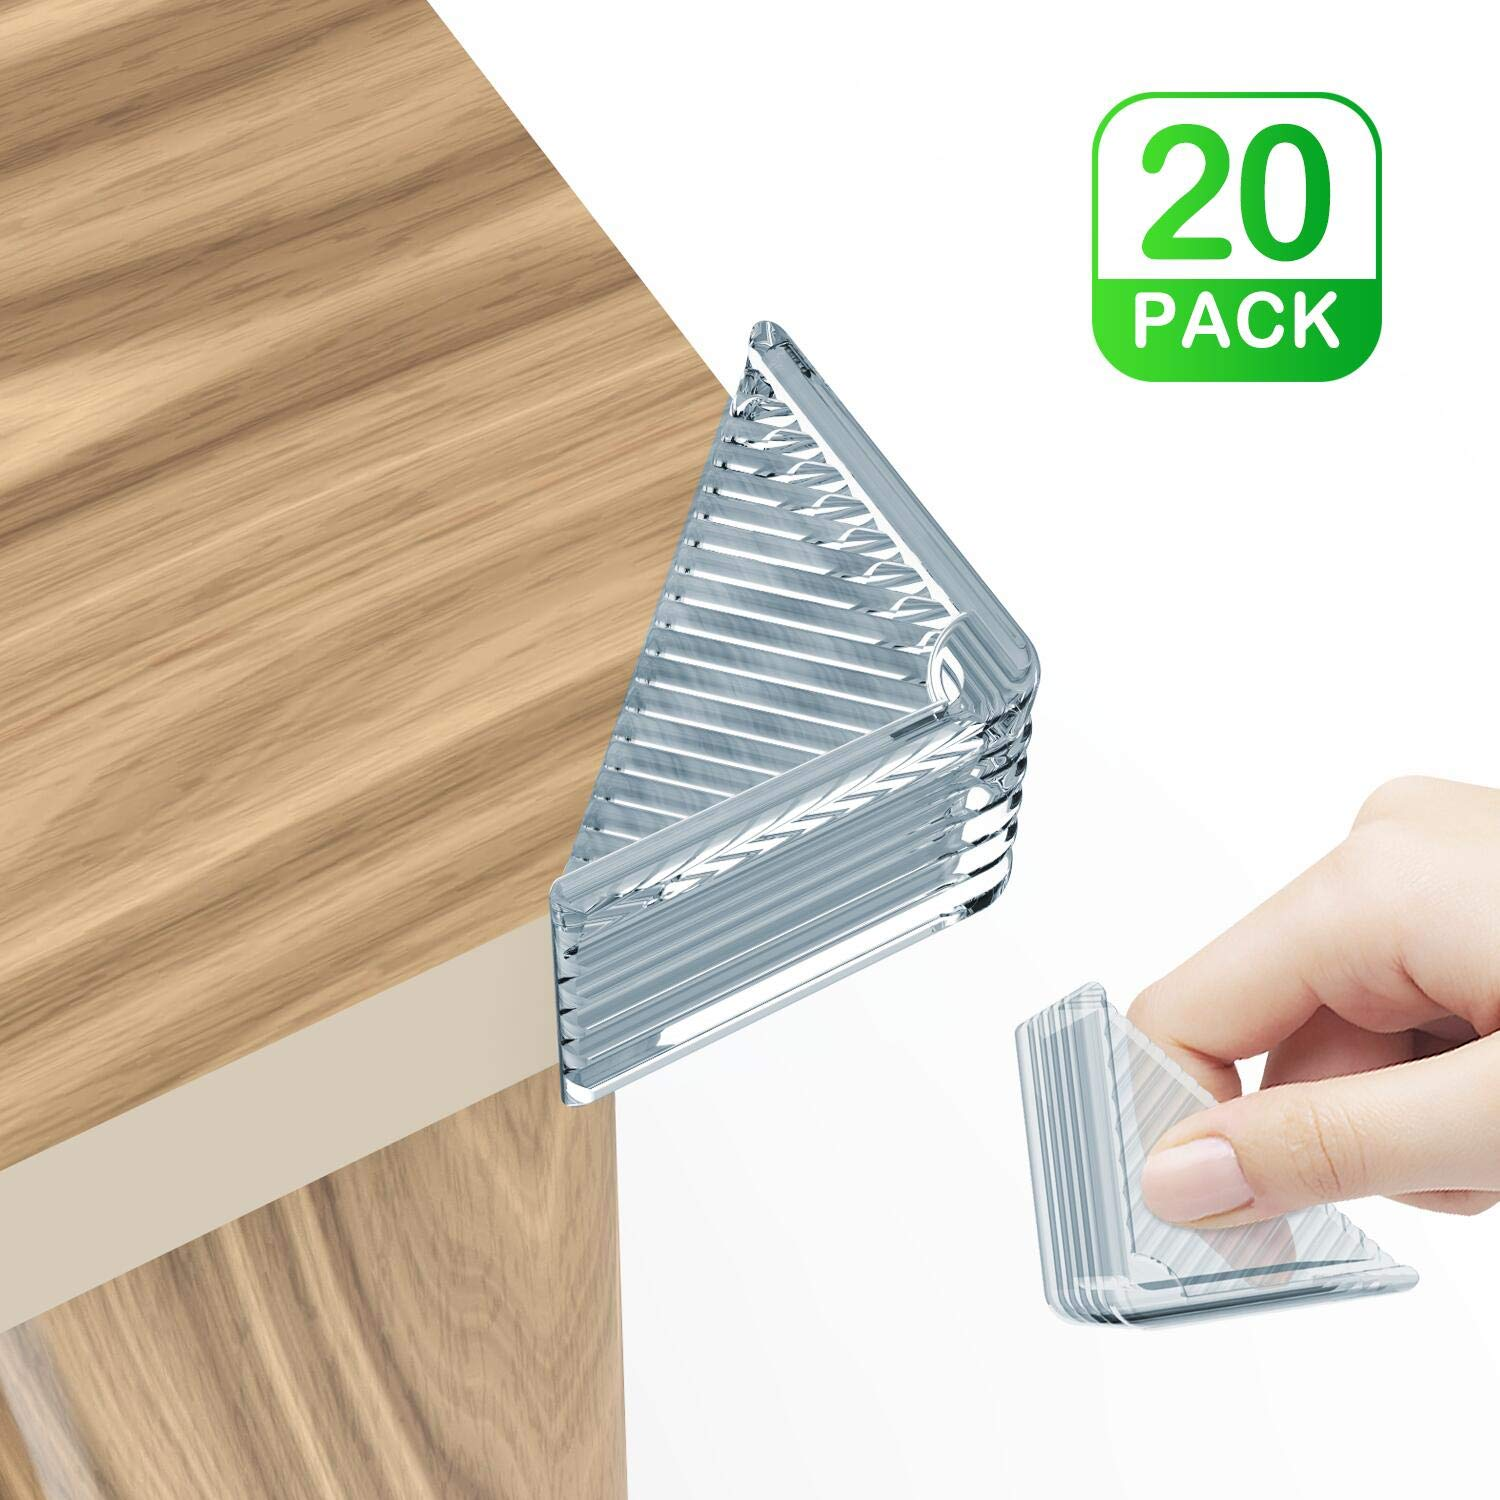 Corner Protector, 20 Pack Super Strong Clear Edge Bumper - Baby Proofing Kit For Furniture Against Sharp Corners, Easy Installation Child Proof Rubber Cabinet Cushion Cover